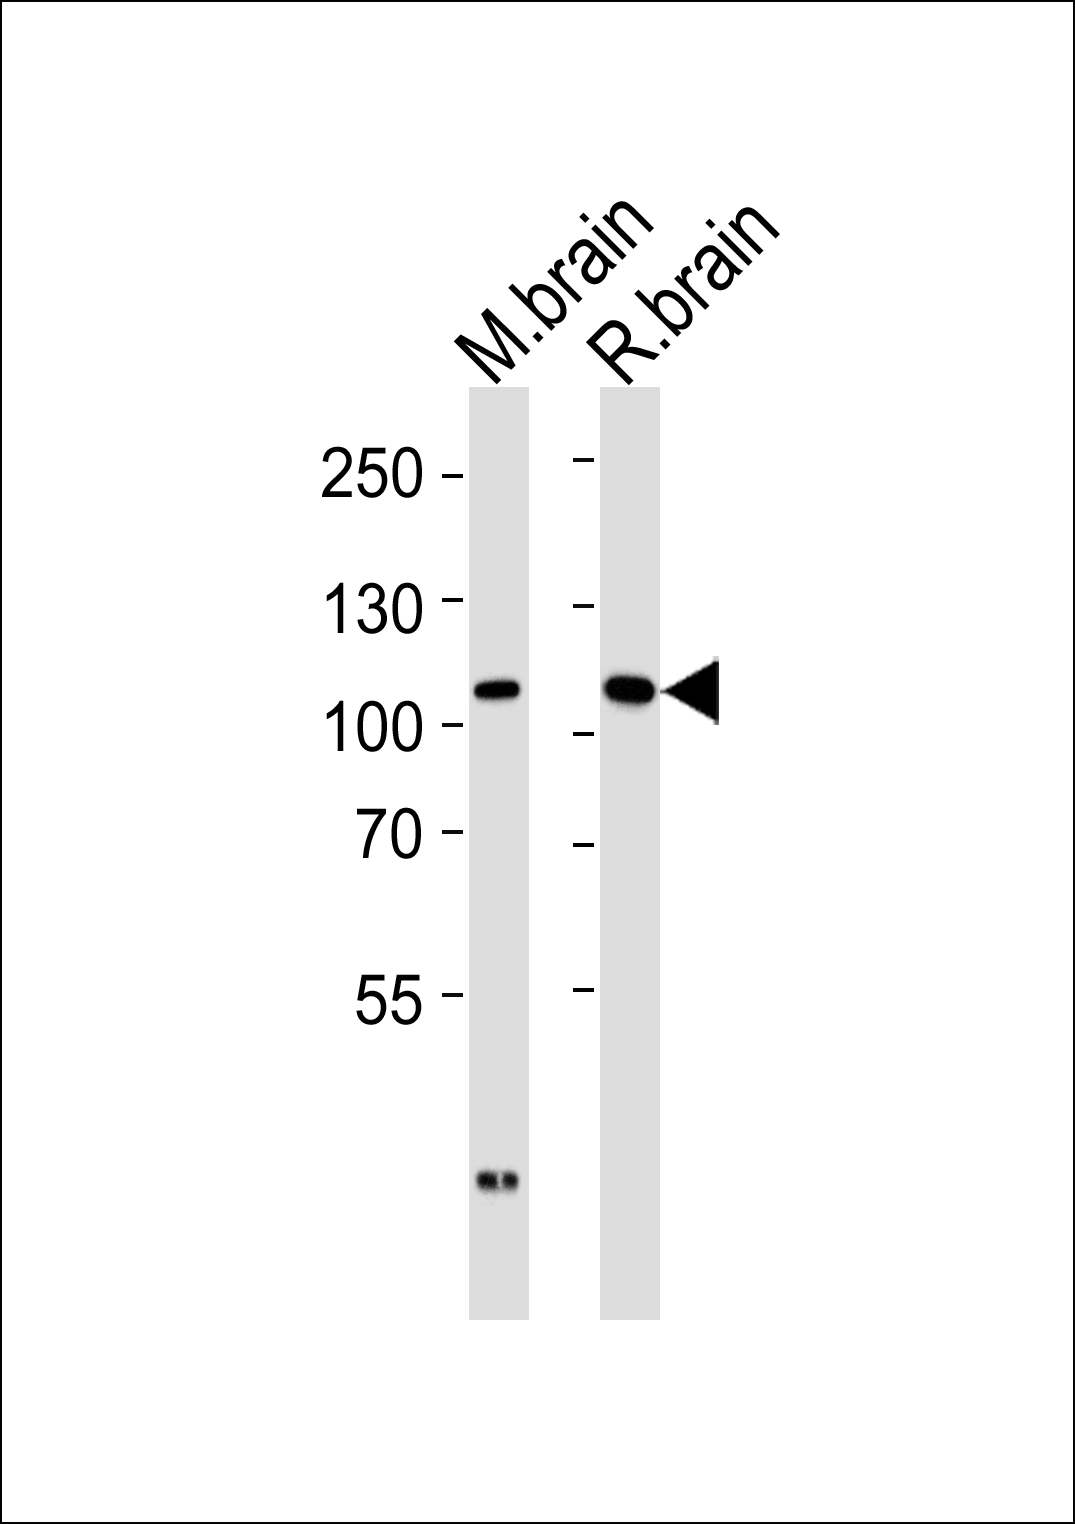 Western blot of tissue lysates from mouse brain and rat brain (from left to right) with DLG2 Antibody. Antibody was diluted at 1:1000 at each lane. A goat anti-rabbit IgG H&L (HRP) at 1:5000 dilution was used as the secondary antibody. Lysates at 35 ug per lane.